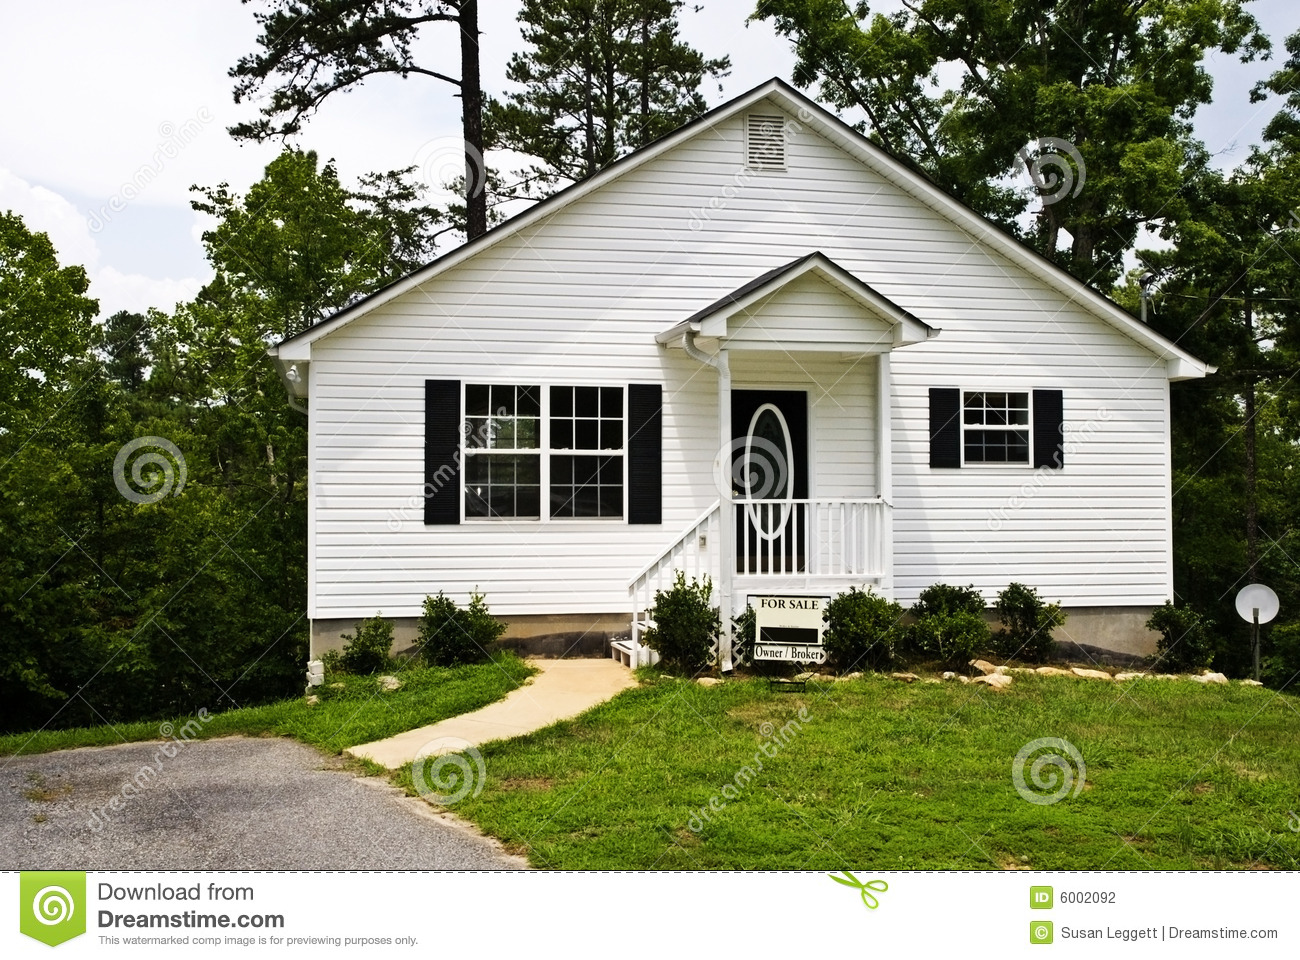 Outstanding Small White House For Sale Stock Photography Image 6002092 Largest Home Design Picture Inspirations Pitcheantrous